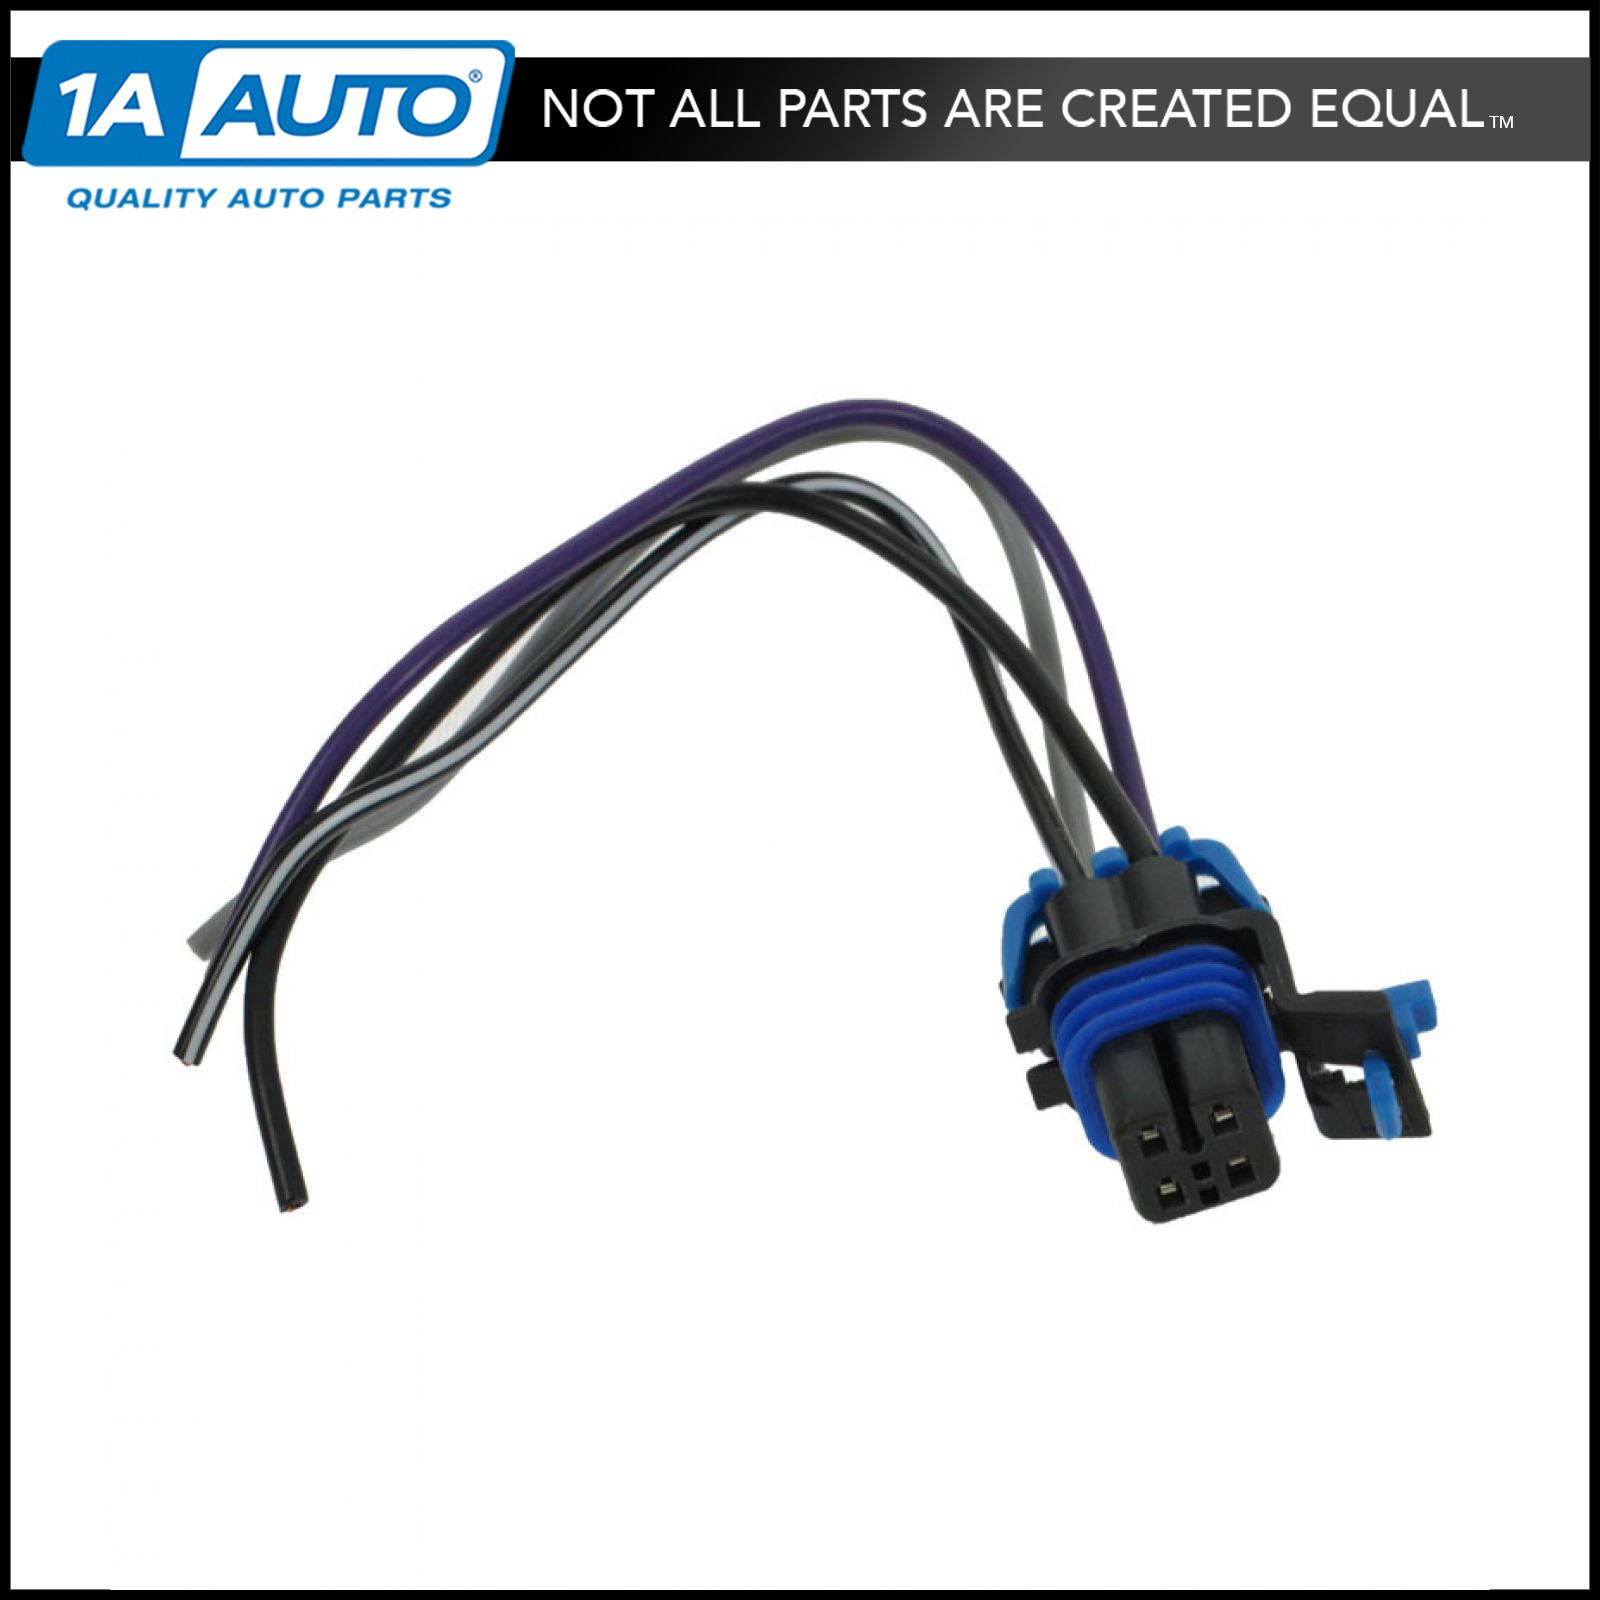 Gm Wiring Harness Connectors : Fuel pump wiring harness with square connector wire